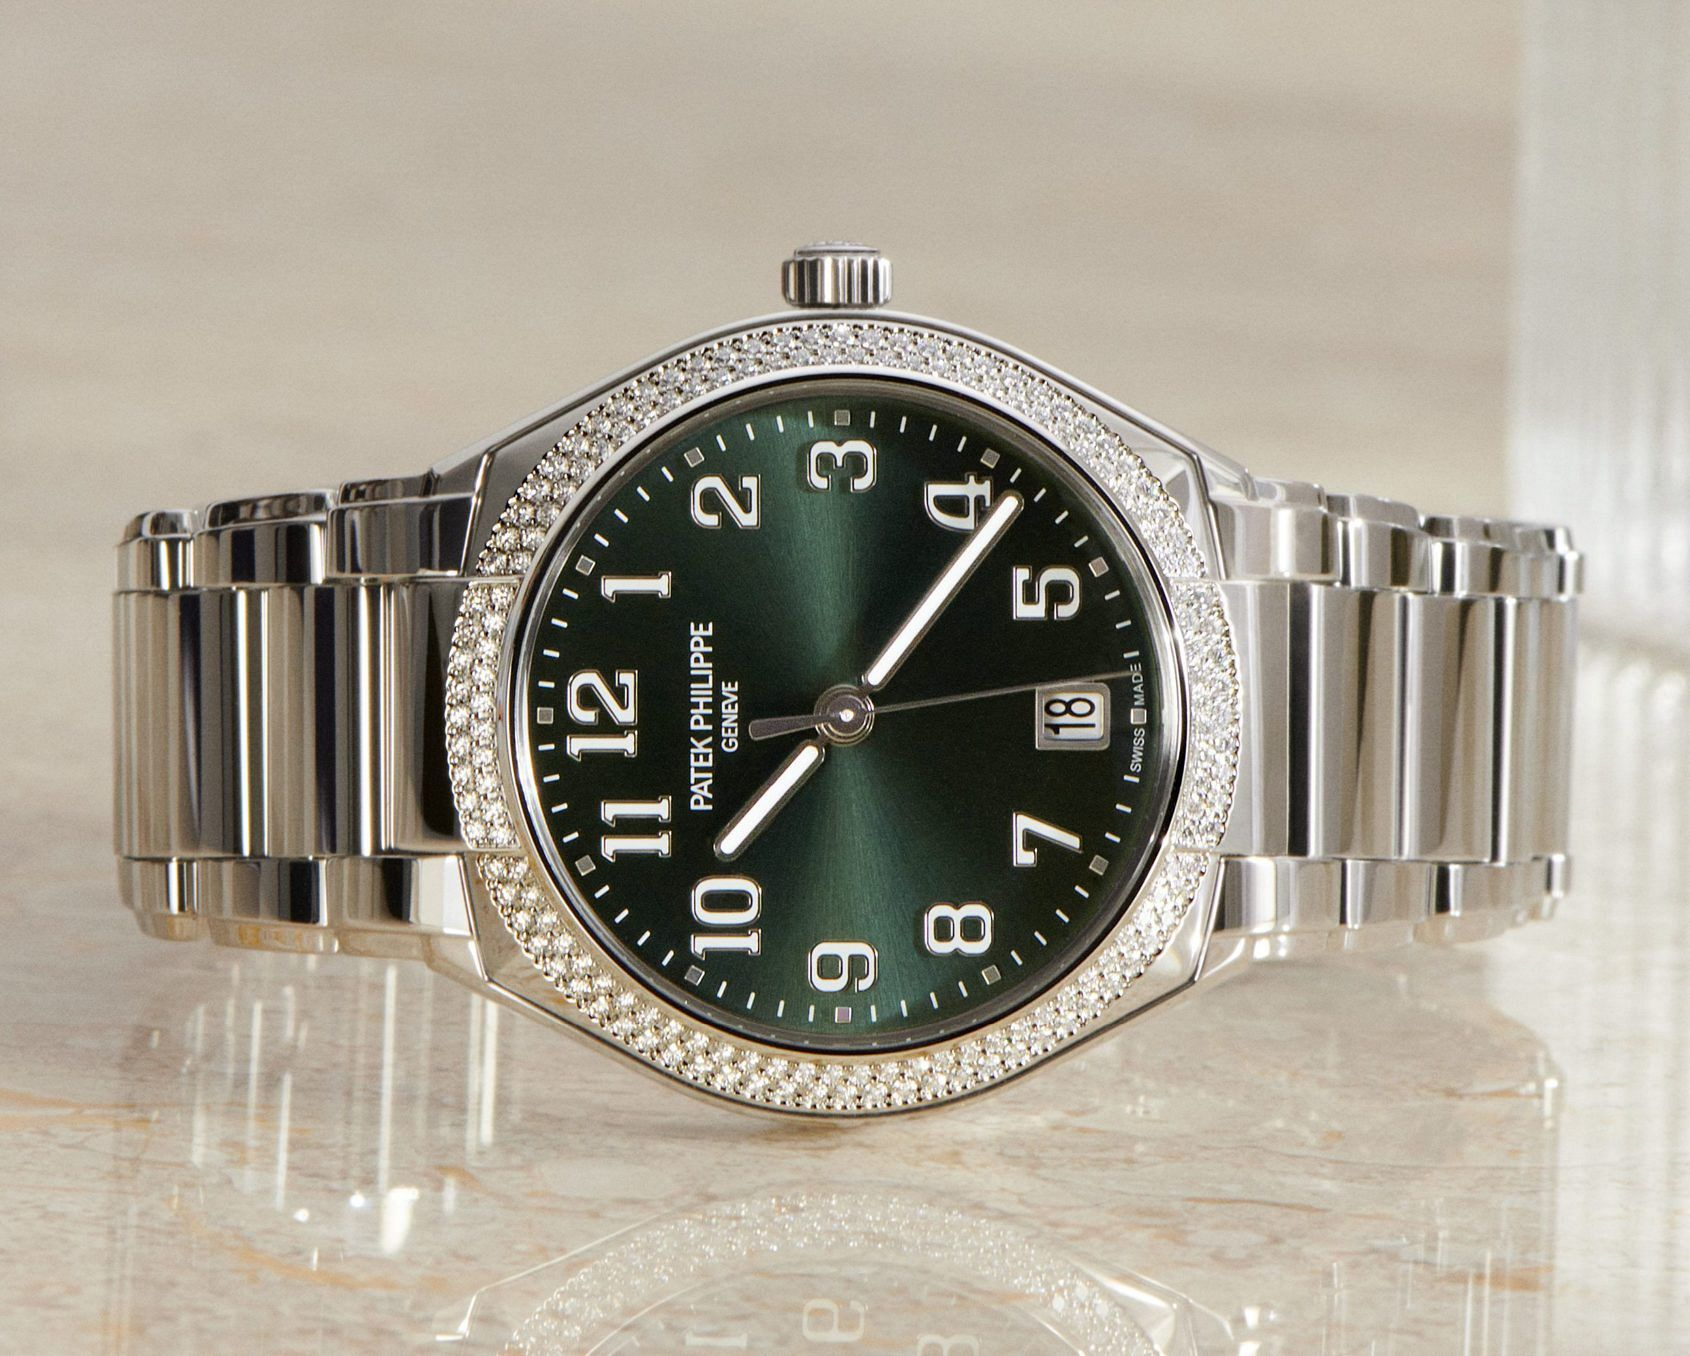 INTRODUCING: The new Patek Philippe Twenty-4 ladies collection will create serious watch envy in men